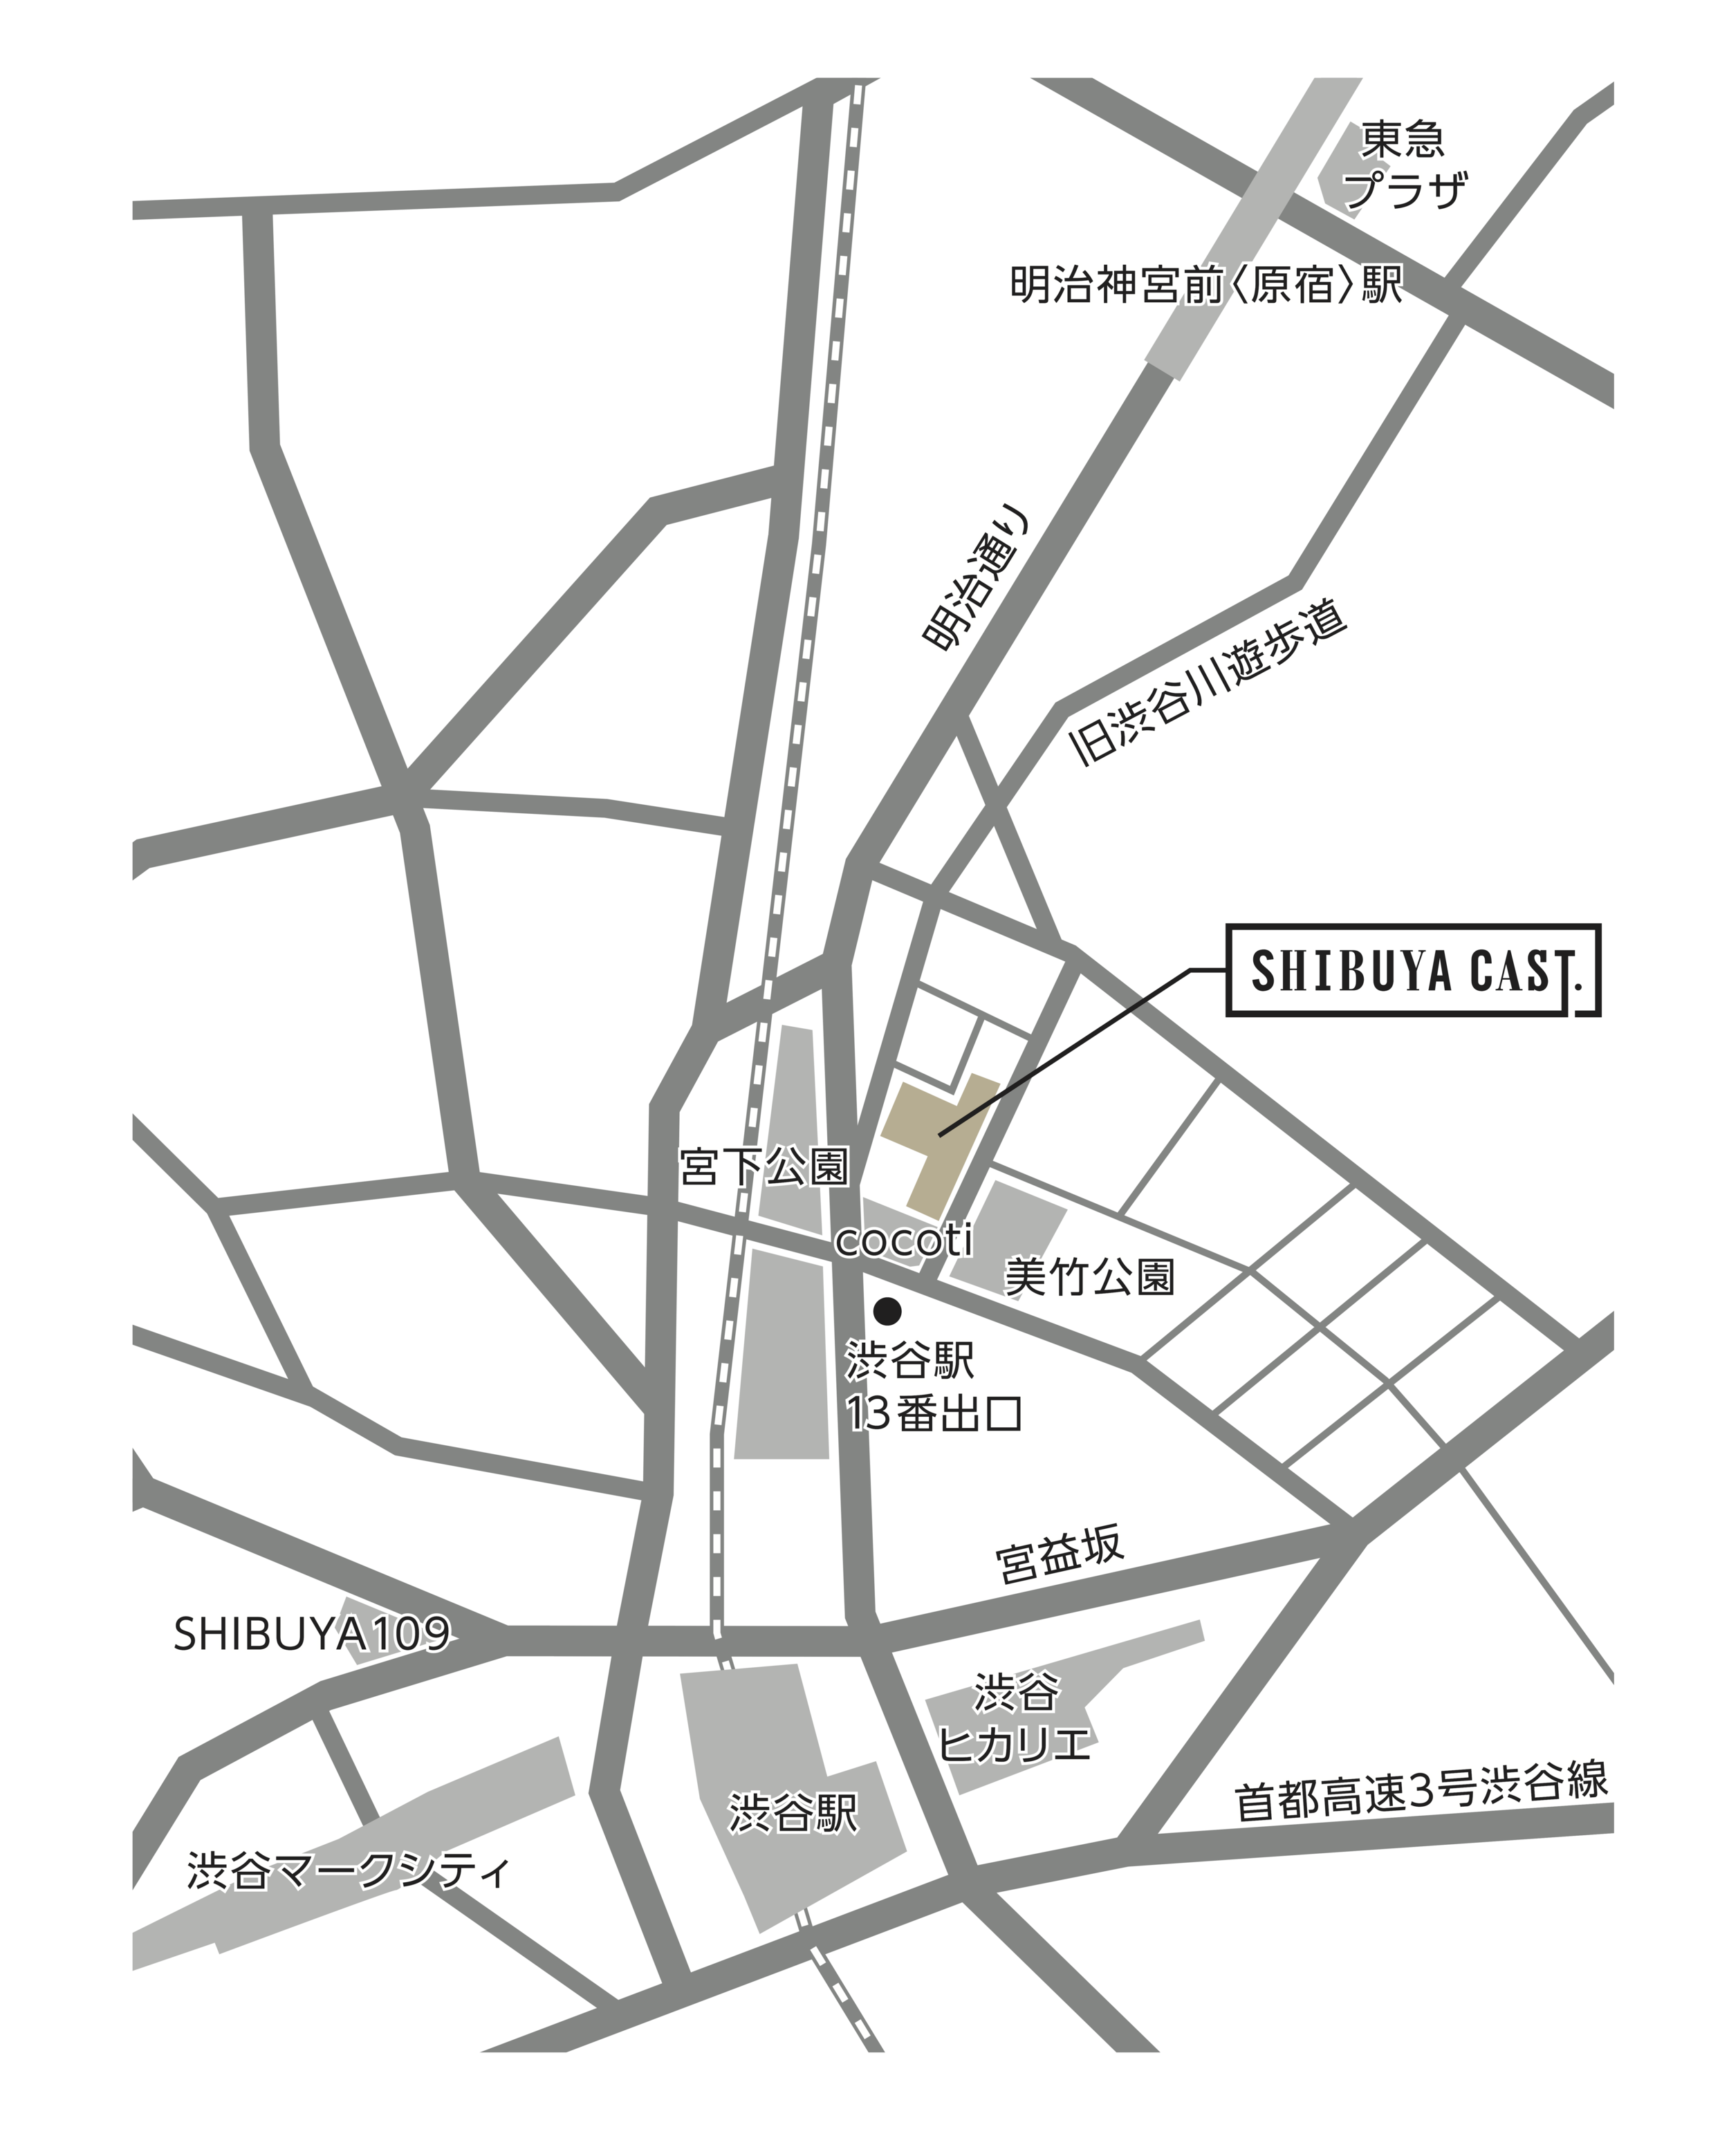 map_small 59MP.png